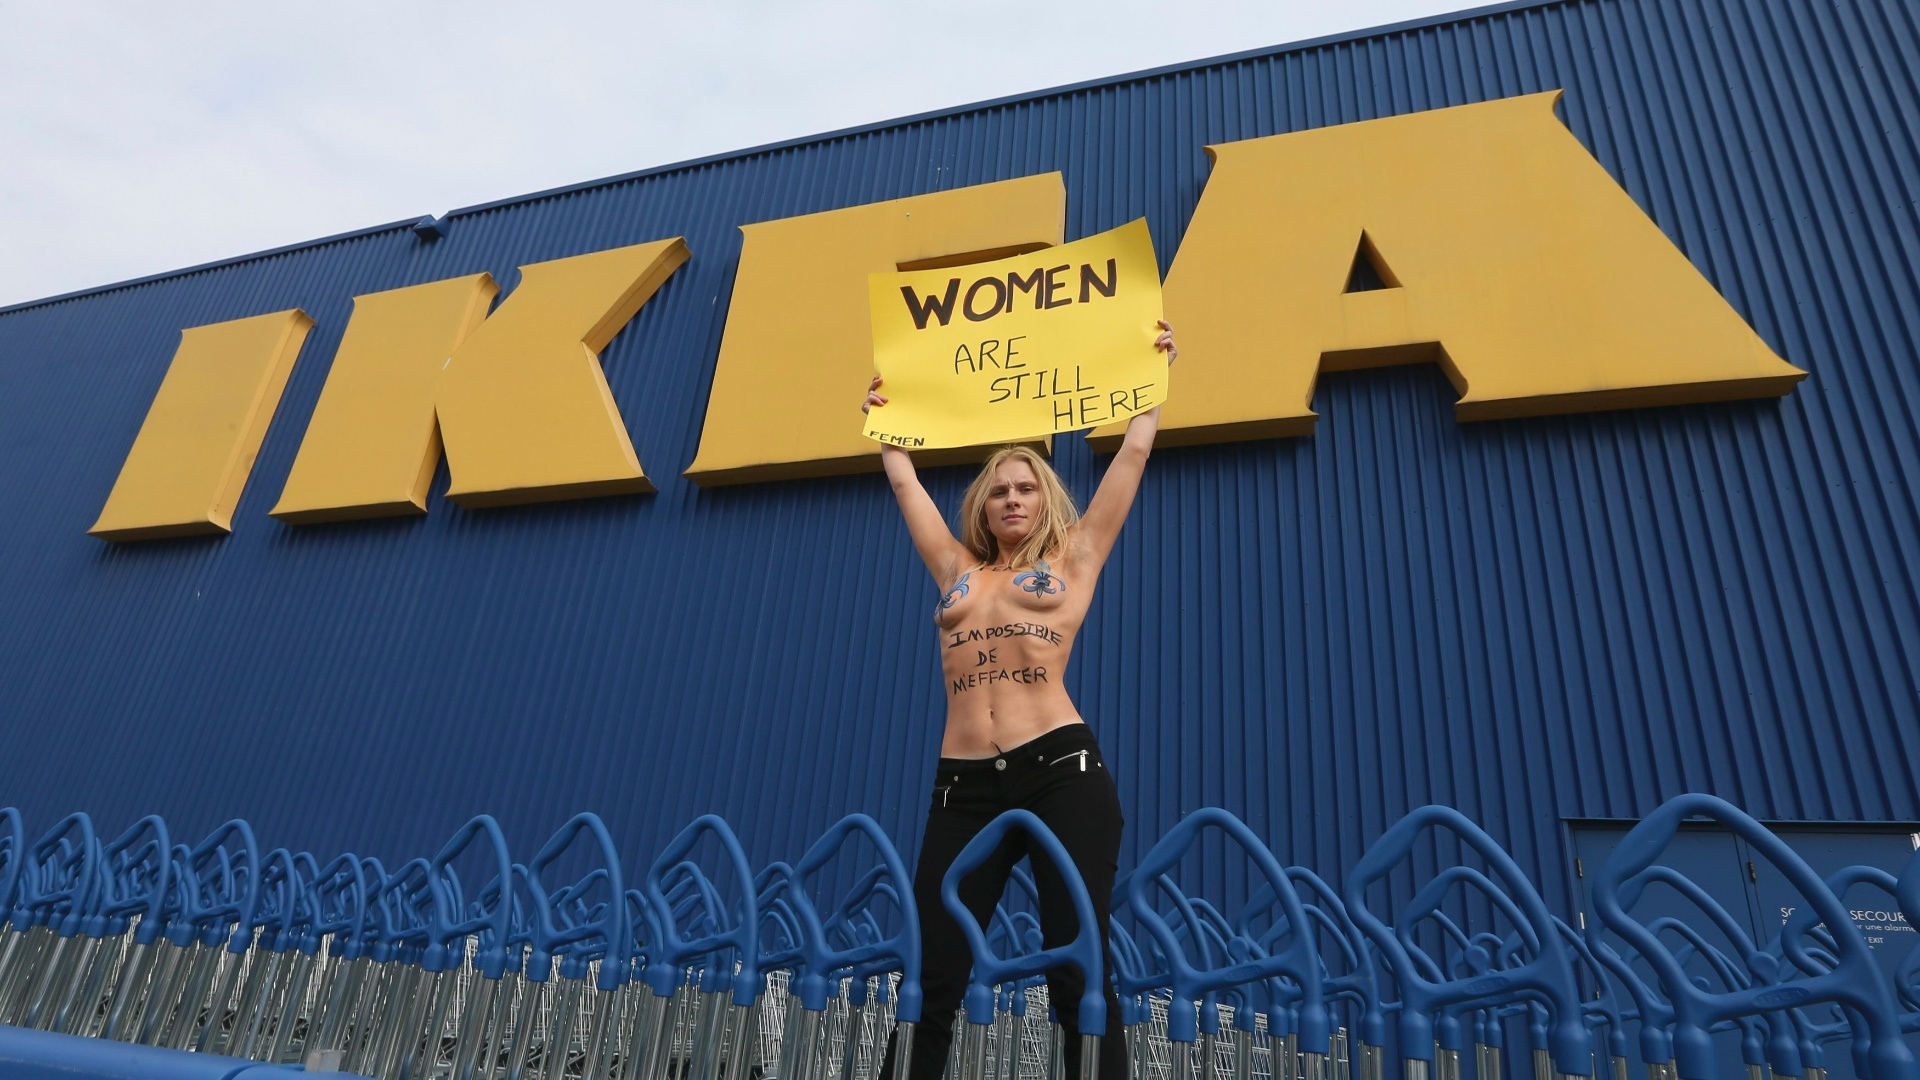 25.out.2012 - Integrante do Femen protesta em frente  loja Ikea em Montreal, no Canad. O grupo feminista  contra a empresa sueca de mveis, que removeu as mulheres de seu catlogo na Arbia Saudita